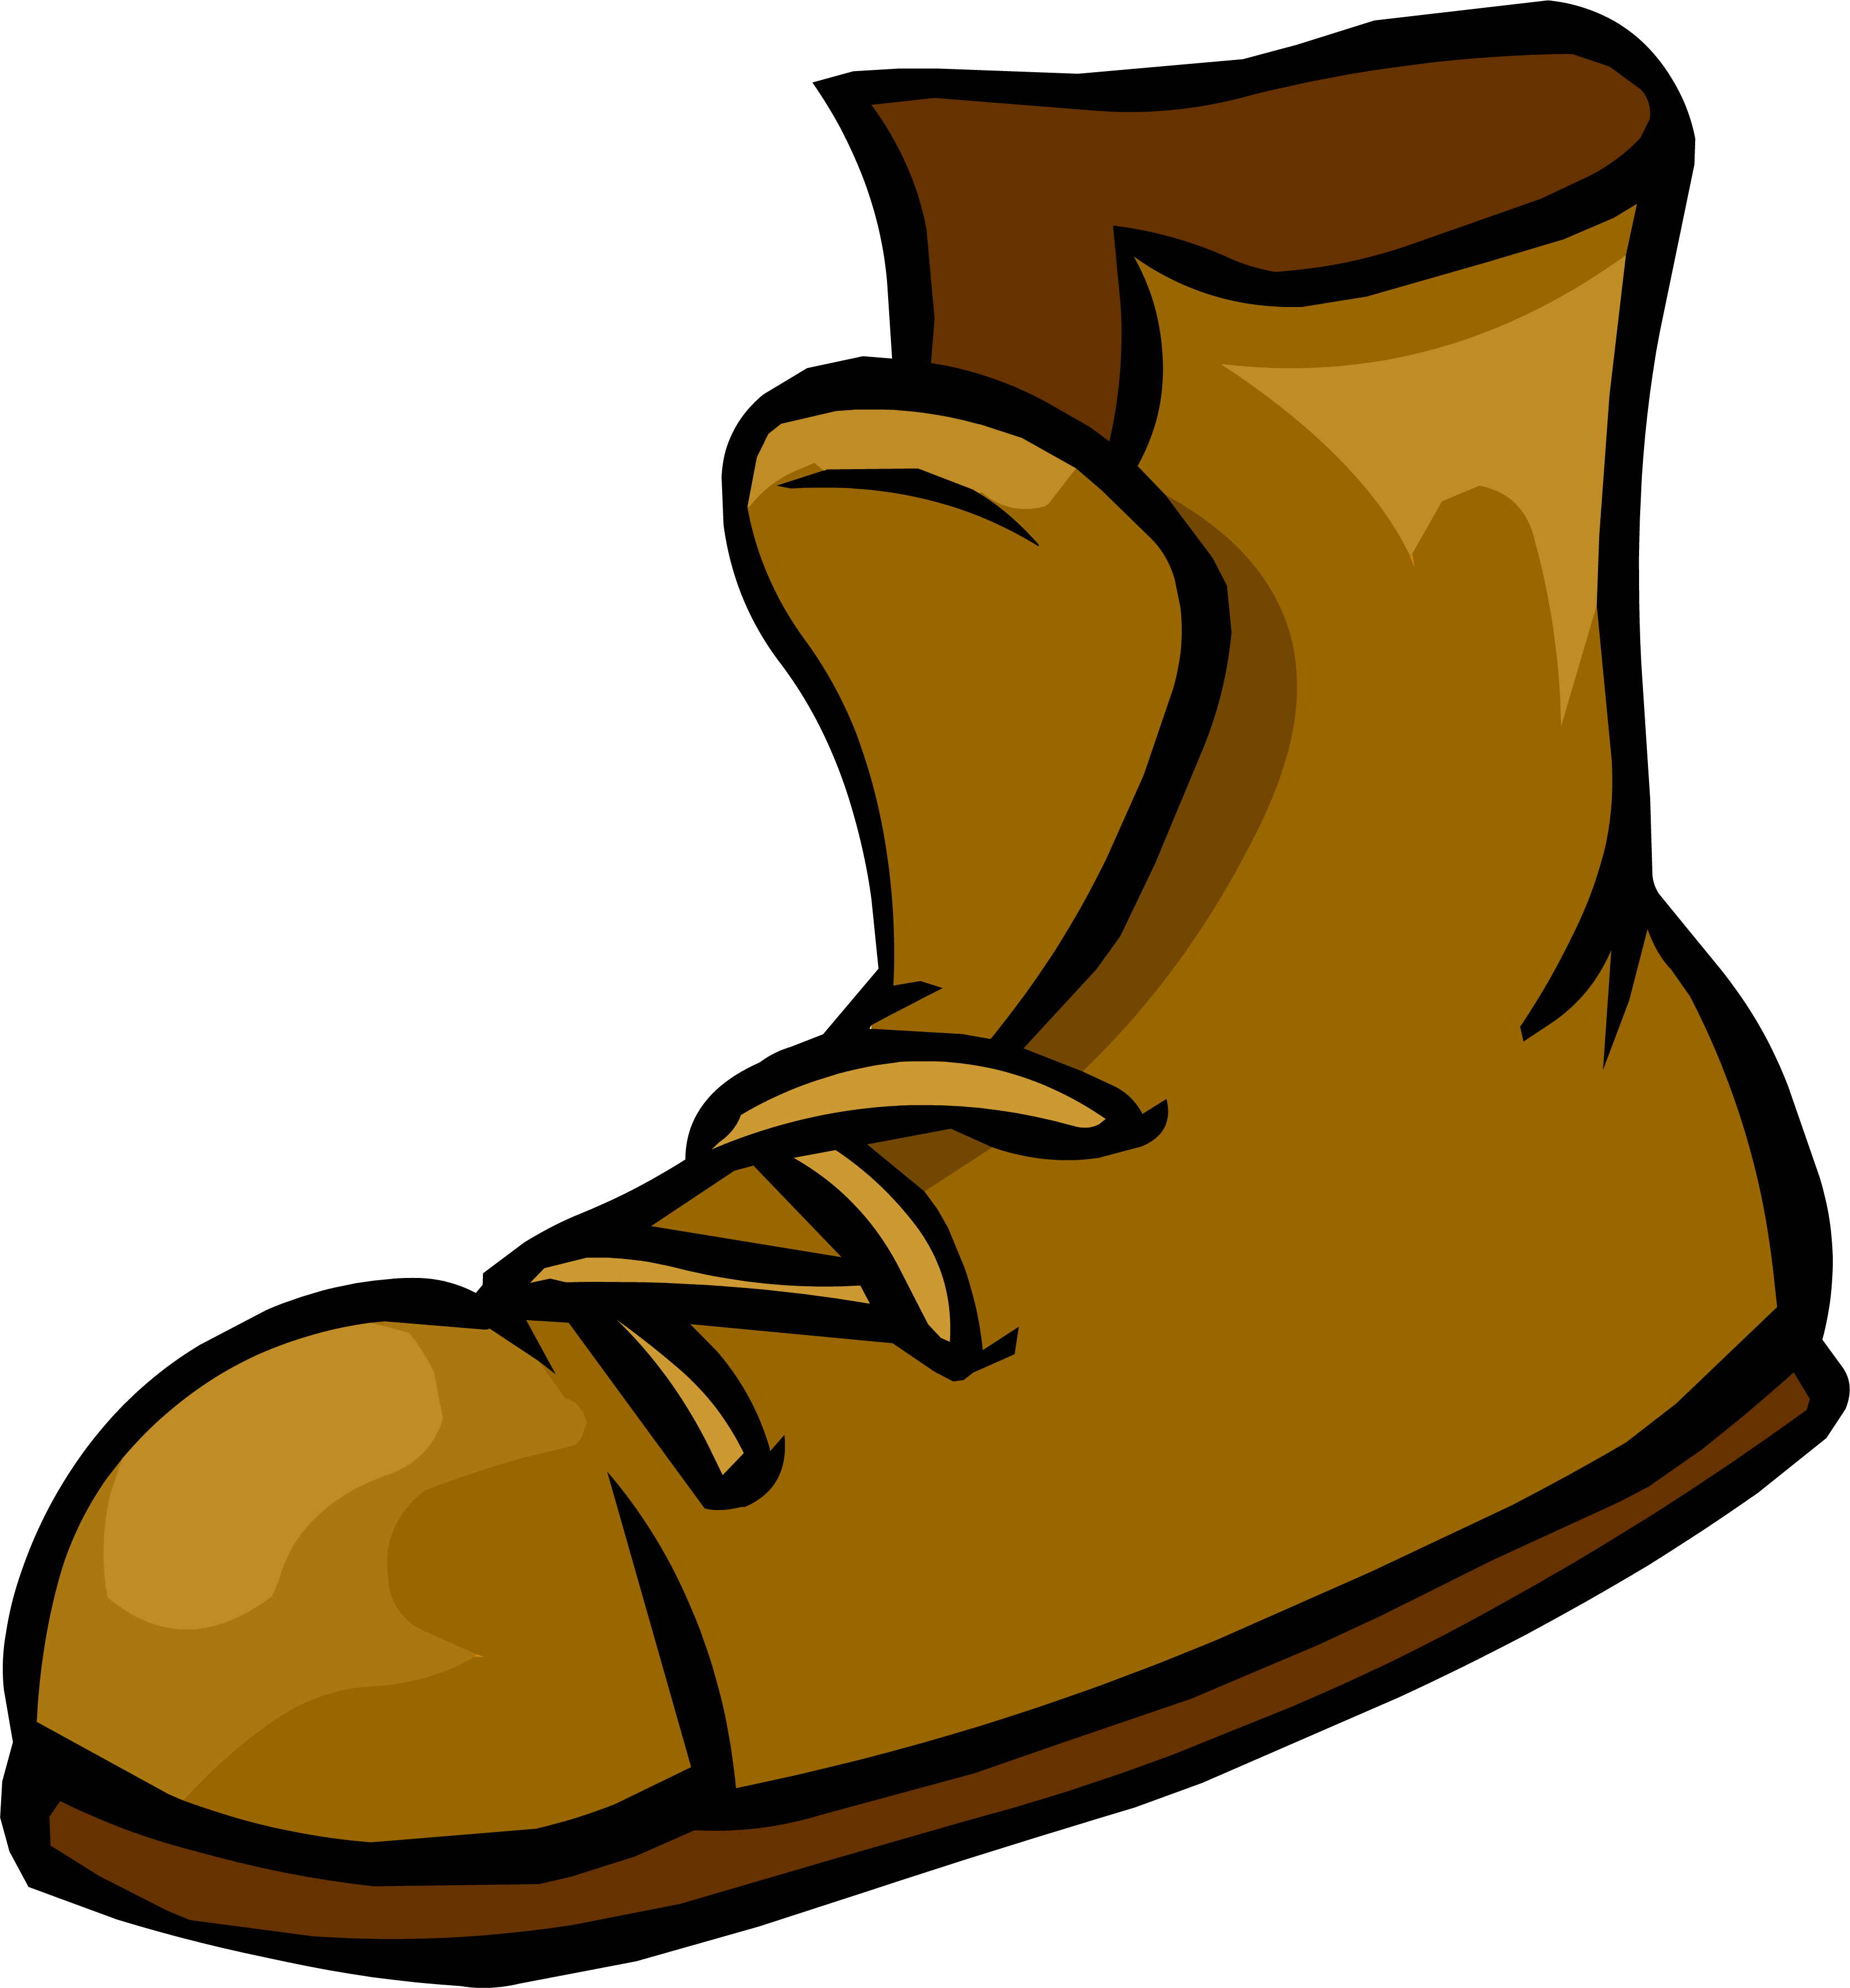 Cowboys boots clipart with crown clip art stock 28+ Collection of Boots Clipart Transparent | High quality, free ... clip art stock